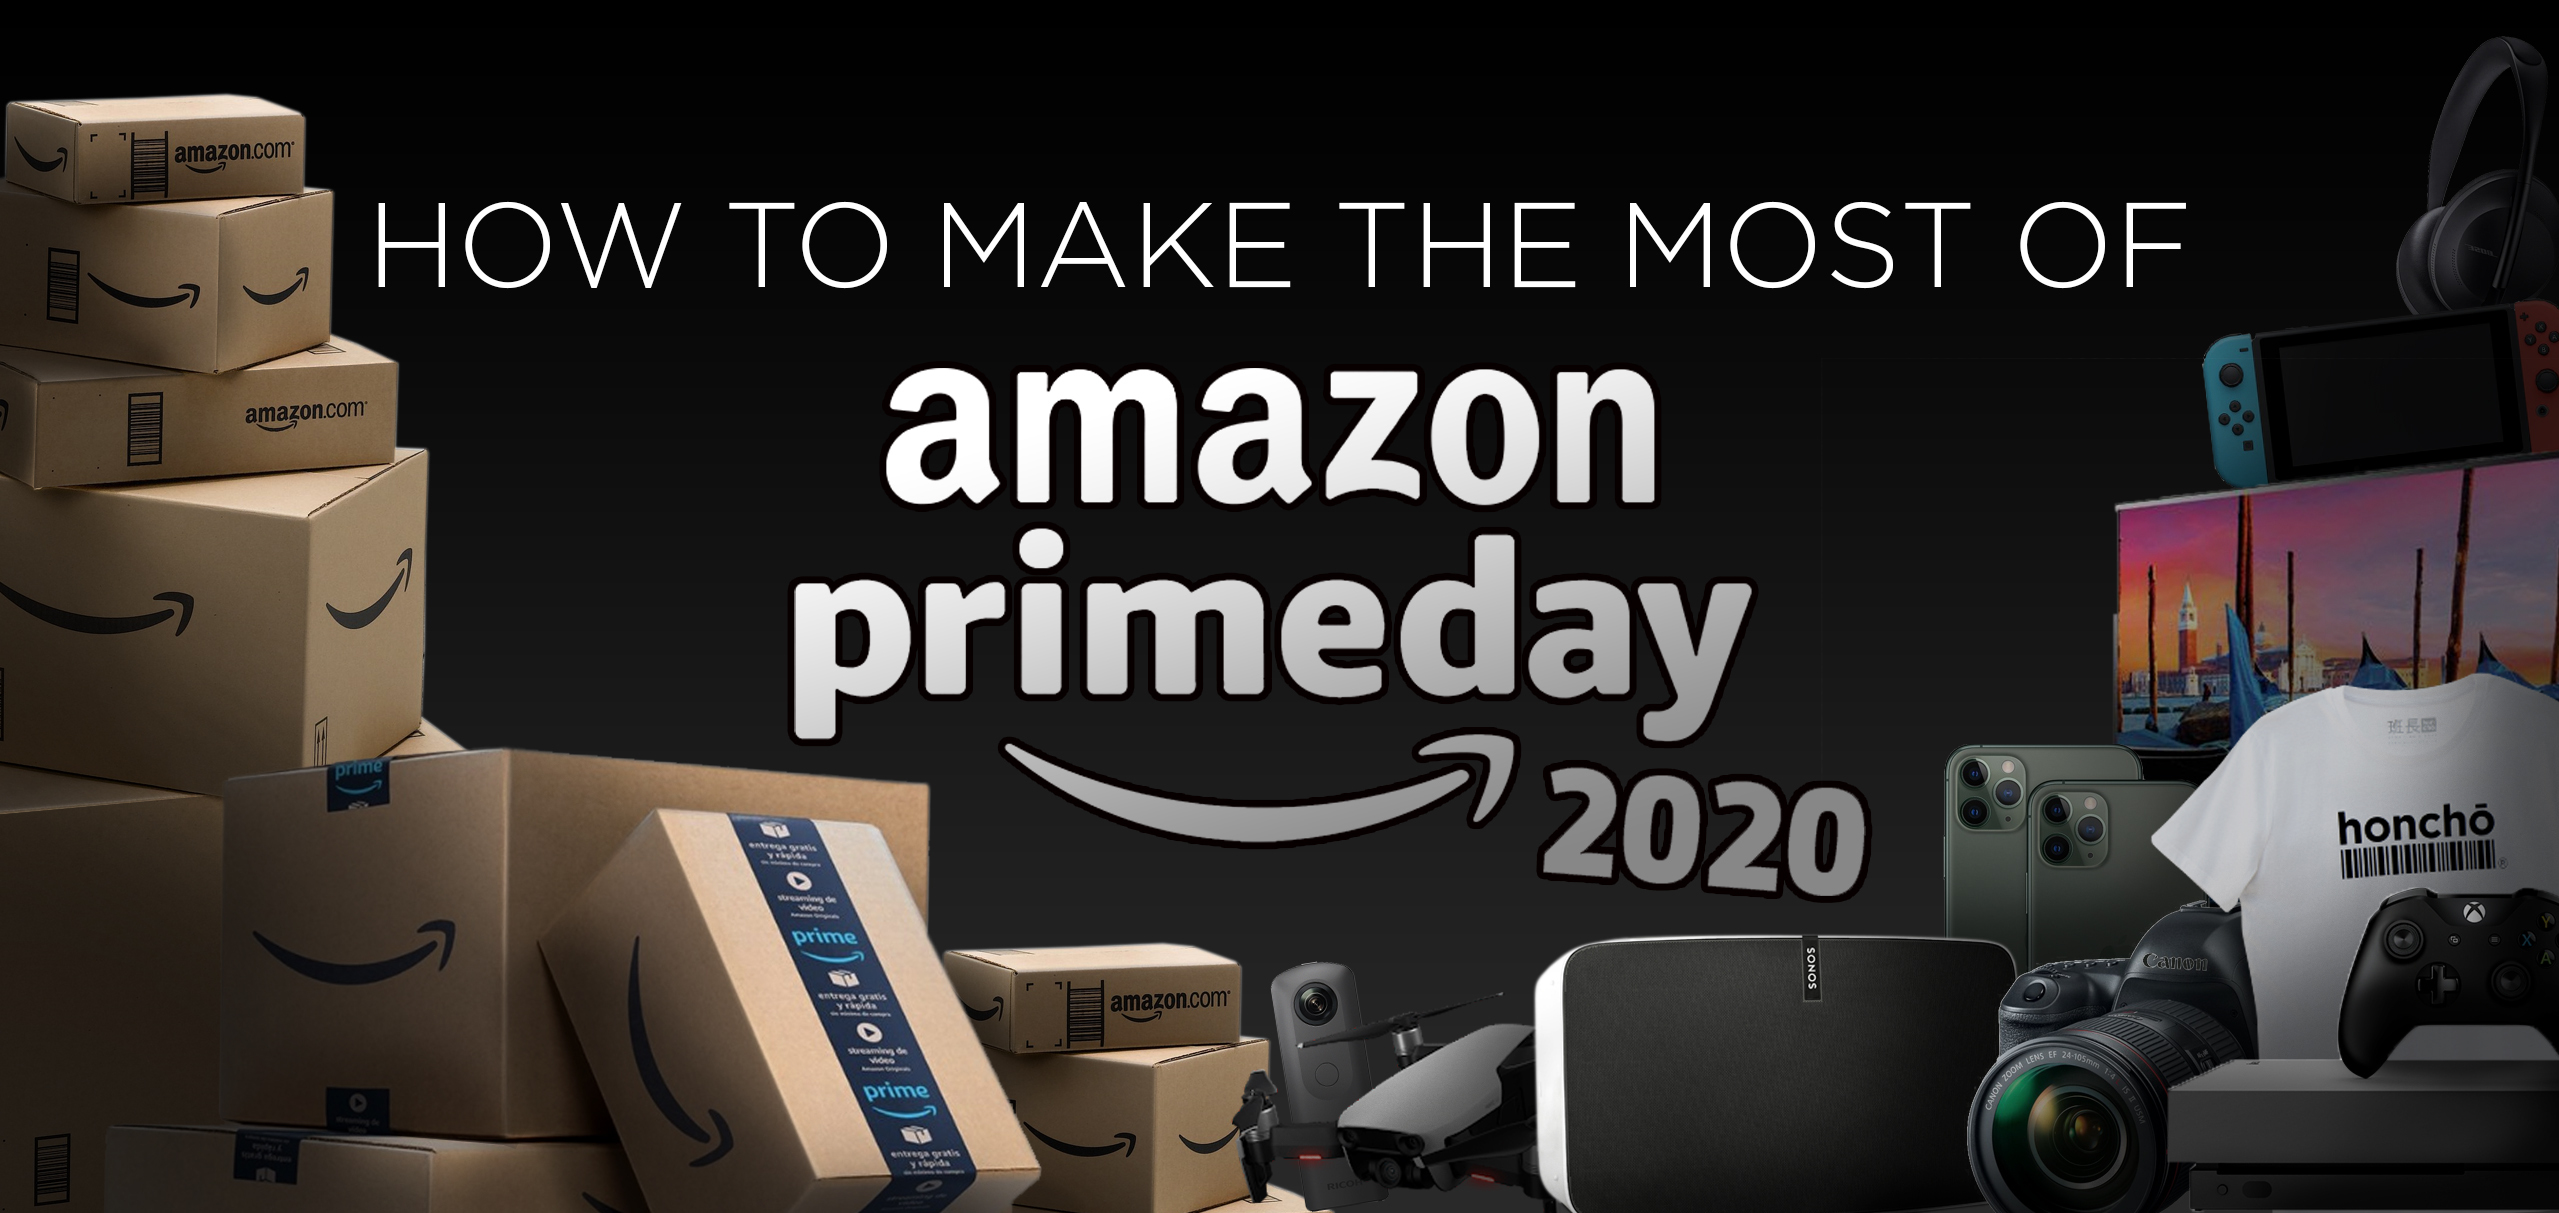 Making the most of Amazon Prime Day